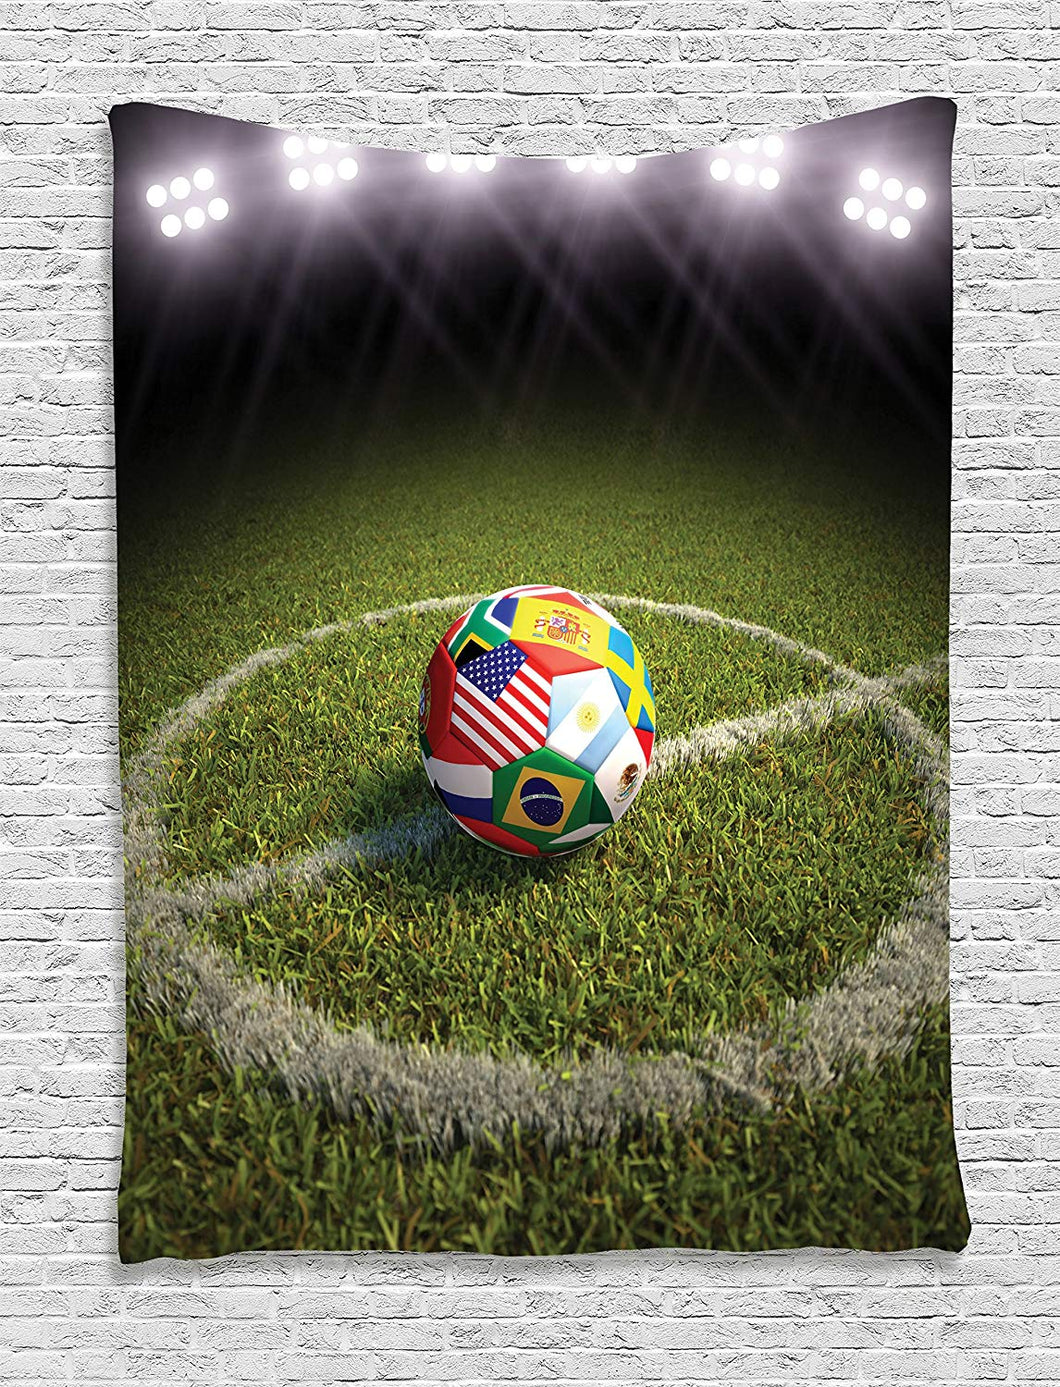 Ambesonne Sports Decor Collection, A Soccer Ball on a Soccer Field Printed Flags of the Participating Countries Image, Bedroom Living Room Dorm Wall Hanging Tapestry, Green White Red